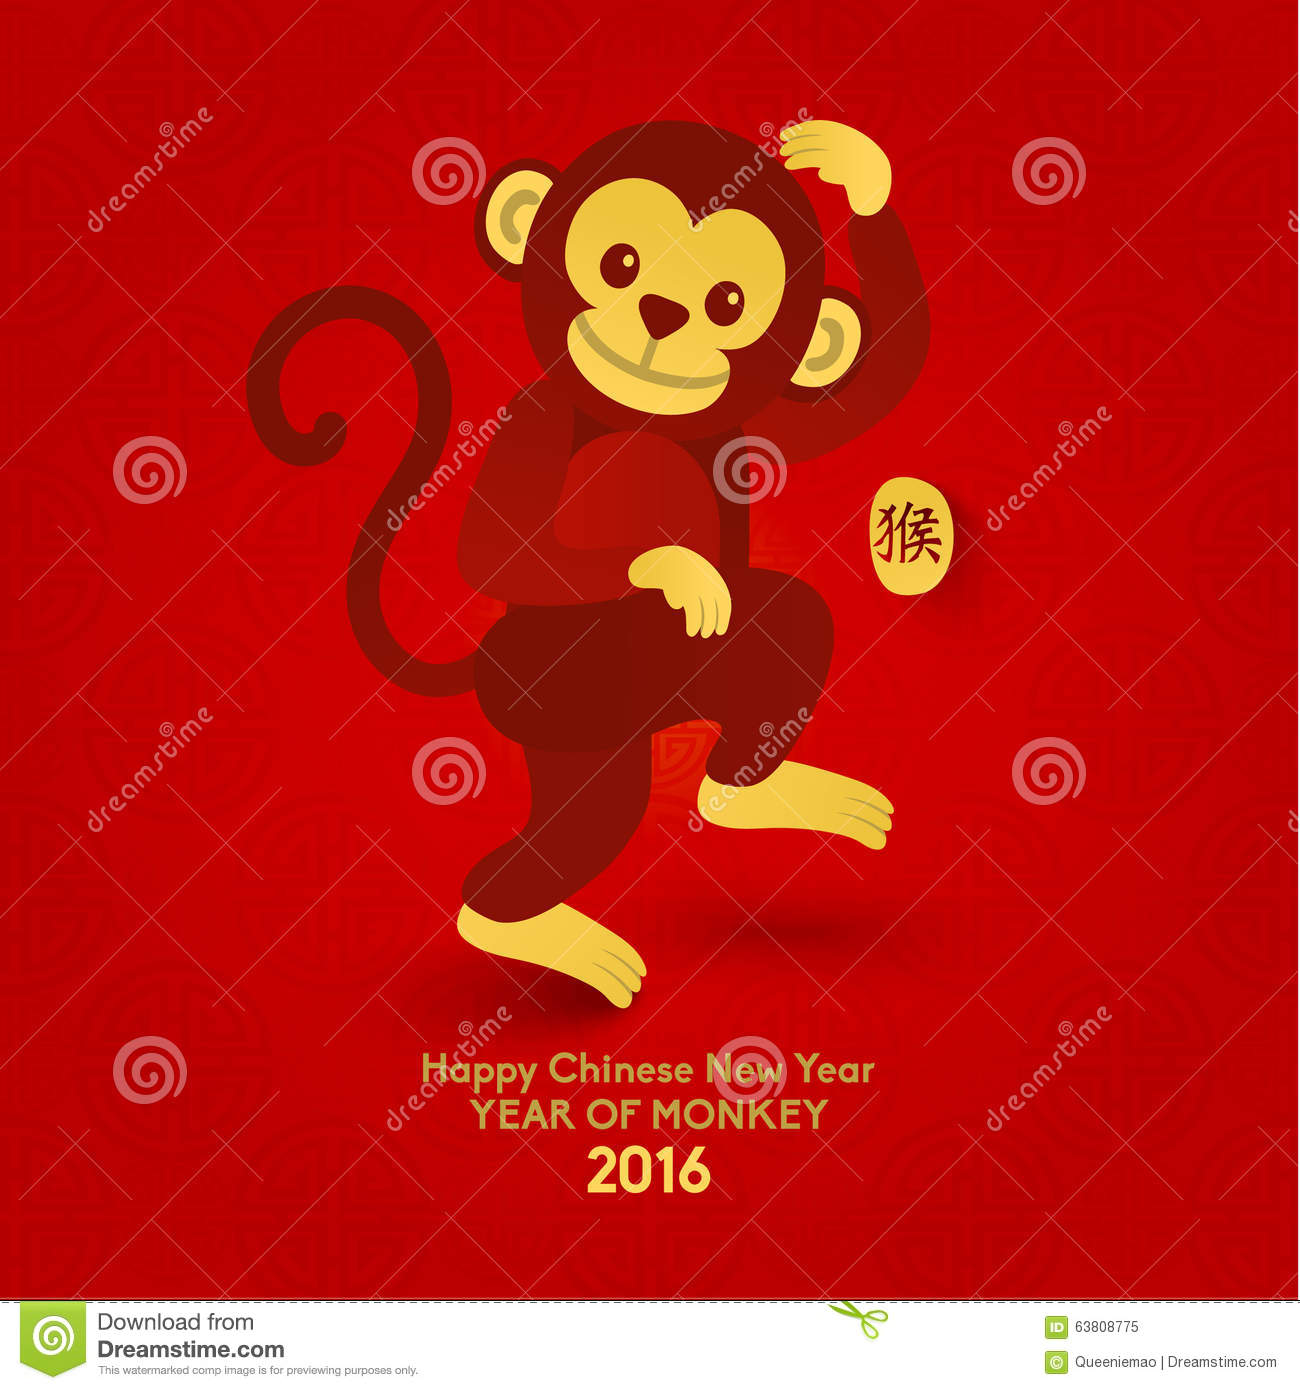 Happy Chinese New Year 2016 Year Of Monkey Stock ...